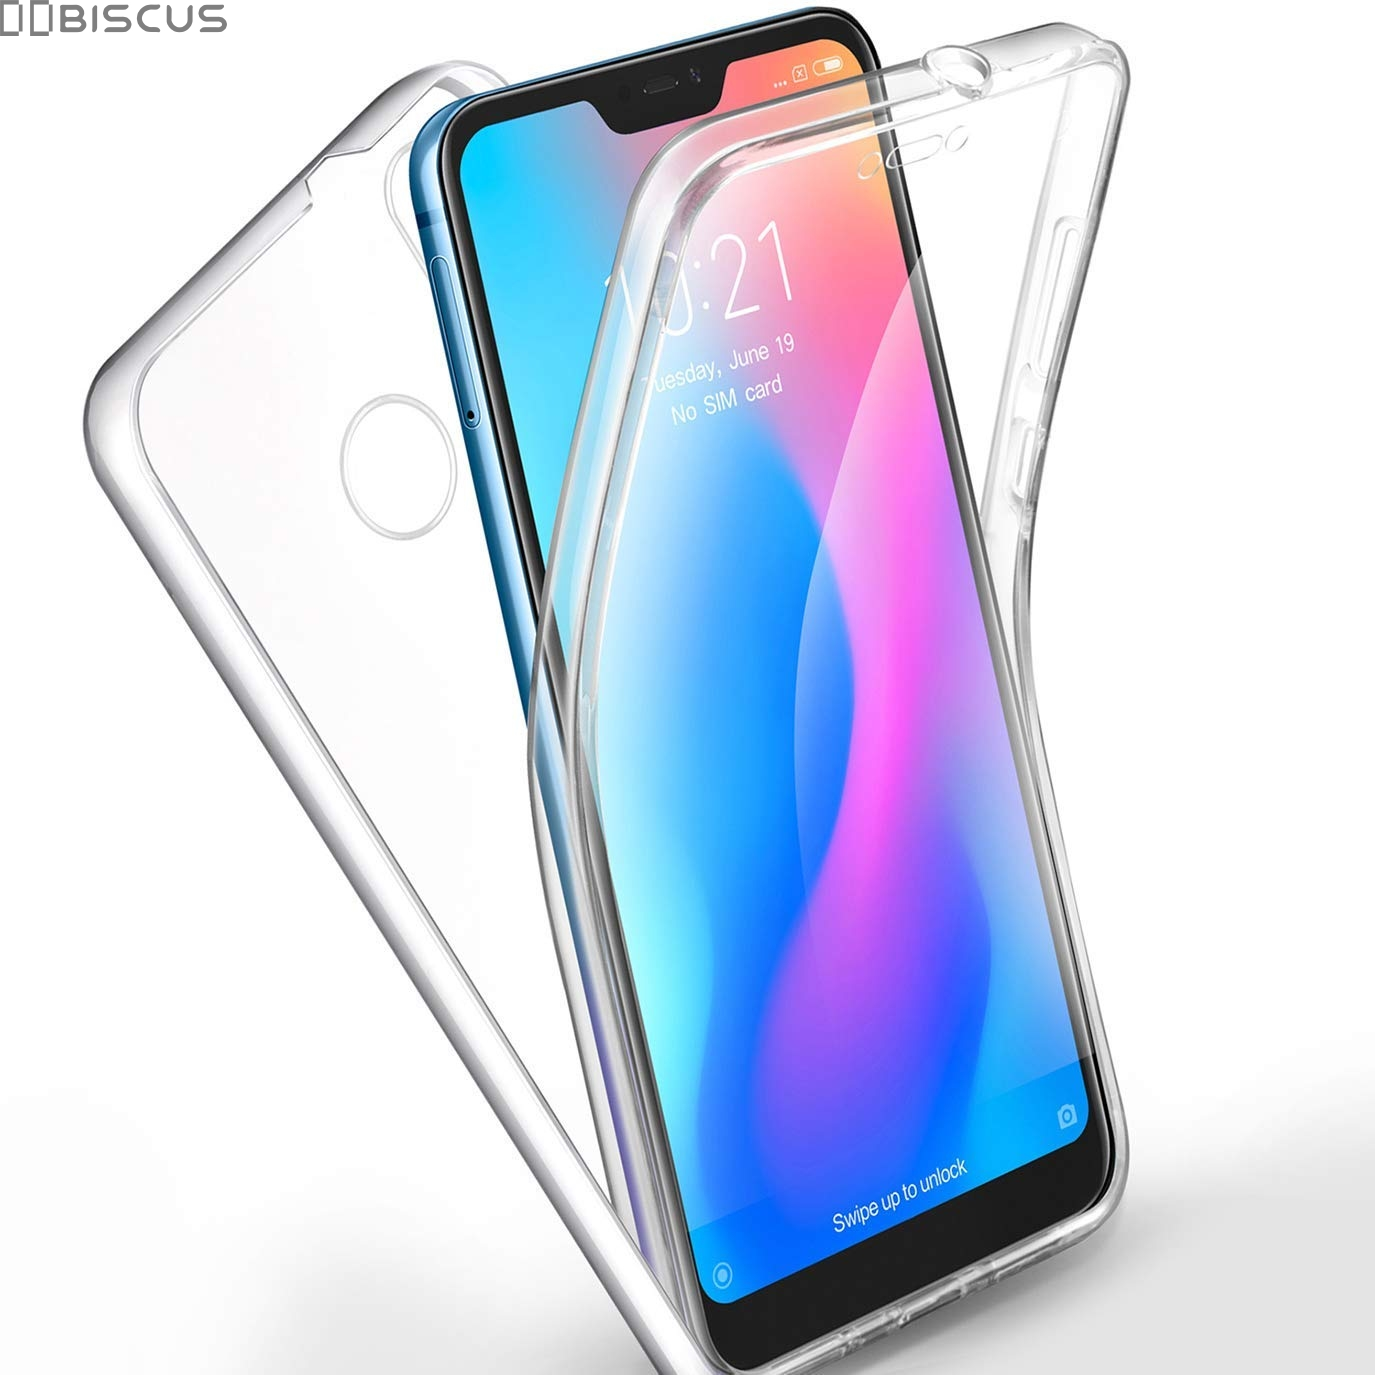 2019 Fashion Silicone Cover Case For Xiaomi Mi 8 8se A1 A2 5 5s 5x 6 Mi5 Mi6 Note 3 Max Mix 2 2s Bowling Ball Sport Diy Luxury Fitted Cases Phone Bags & Cases